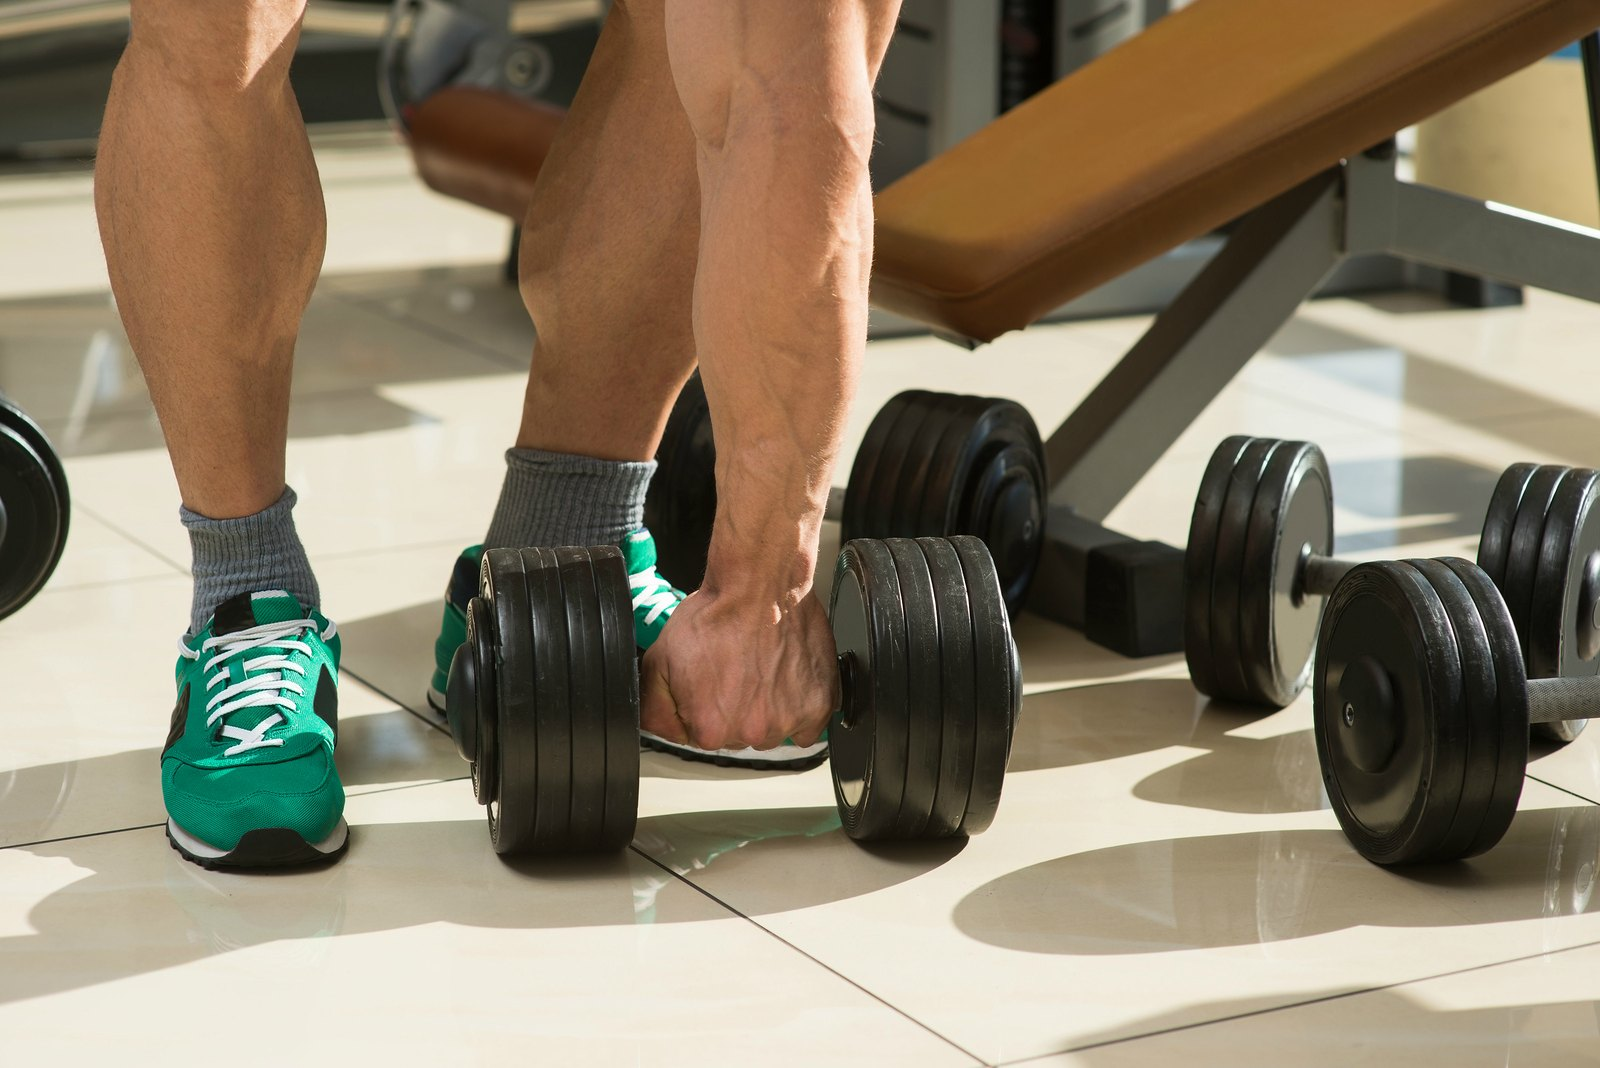 Try These Top Forearm Exercises To Build Strength & Toning